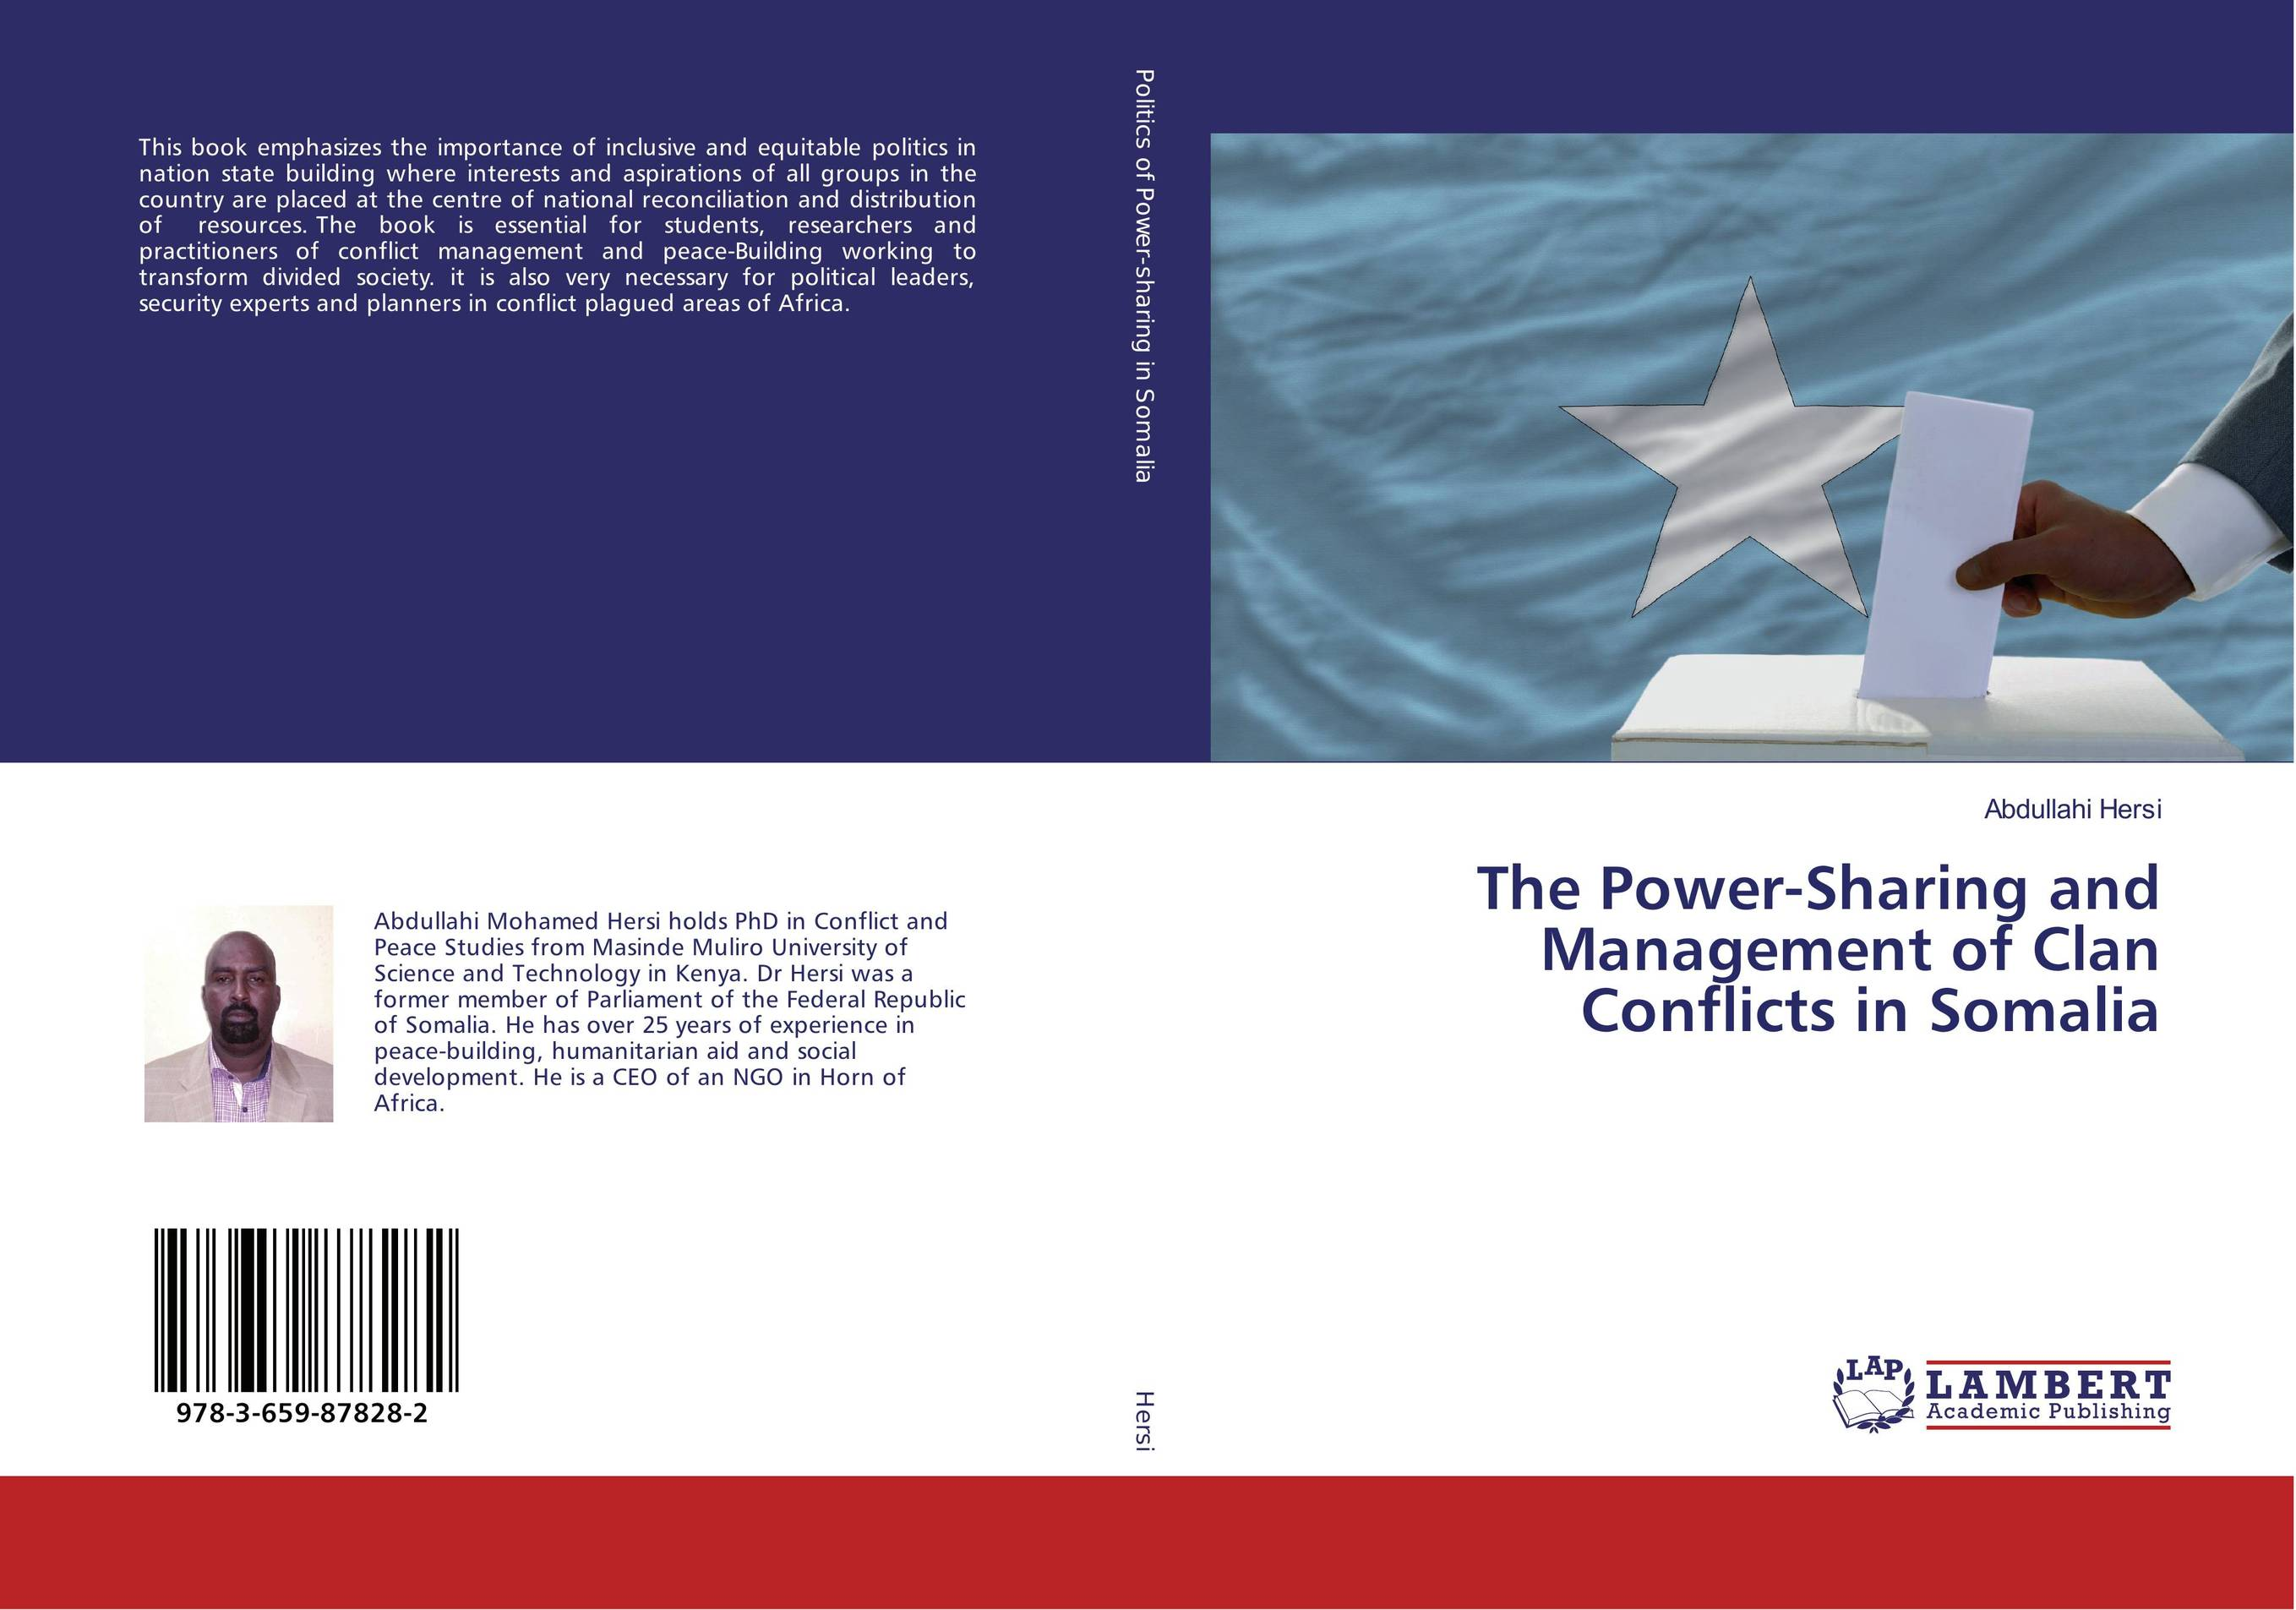 The Power-Sharing and Management of Clan Conflicts in Somalia trans border ethnic hegemony and political conflict in africa